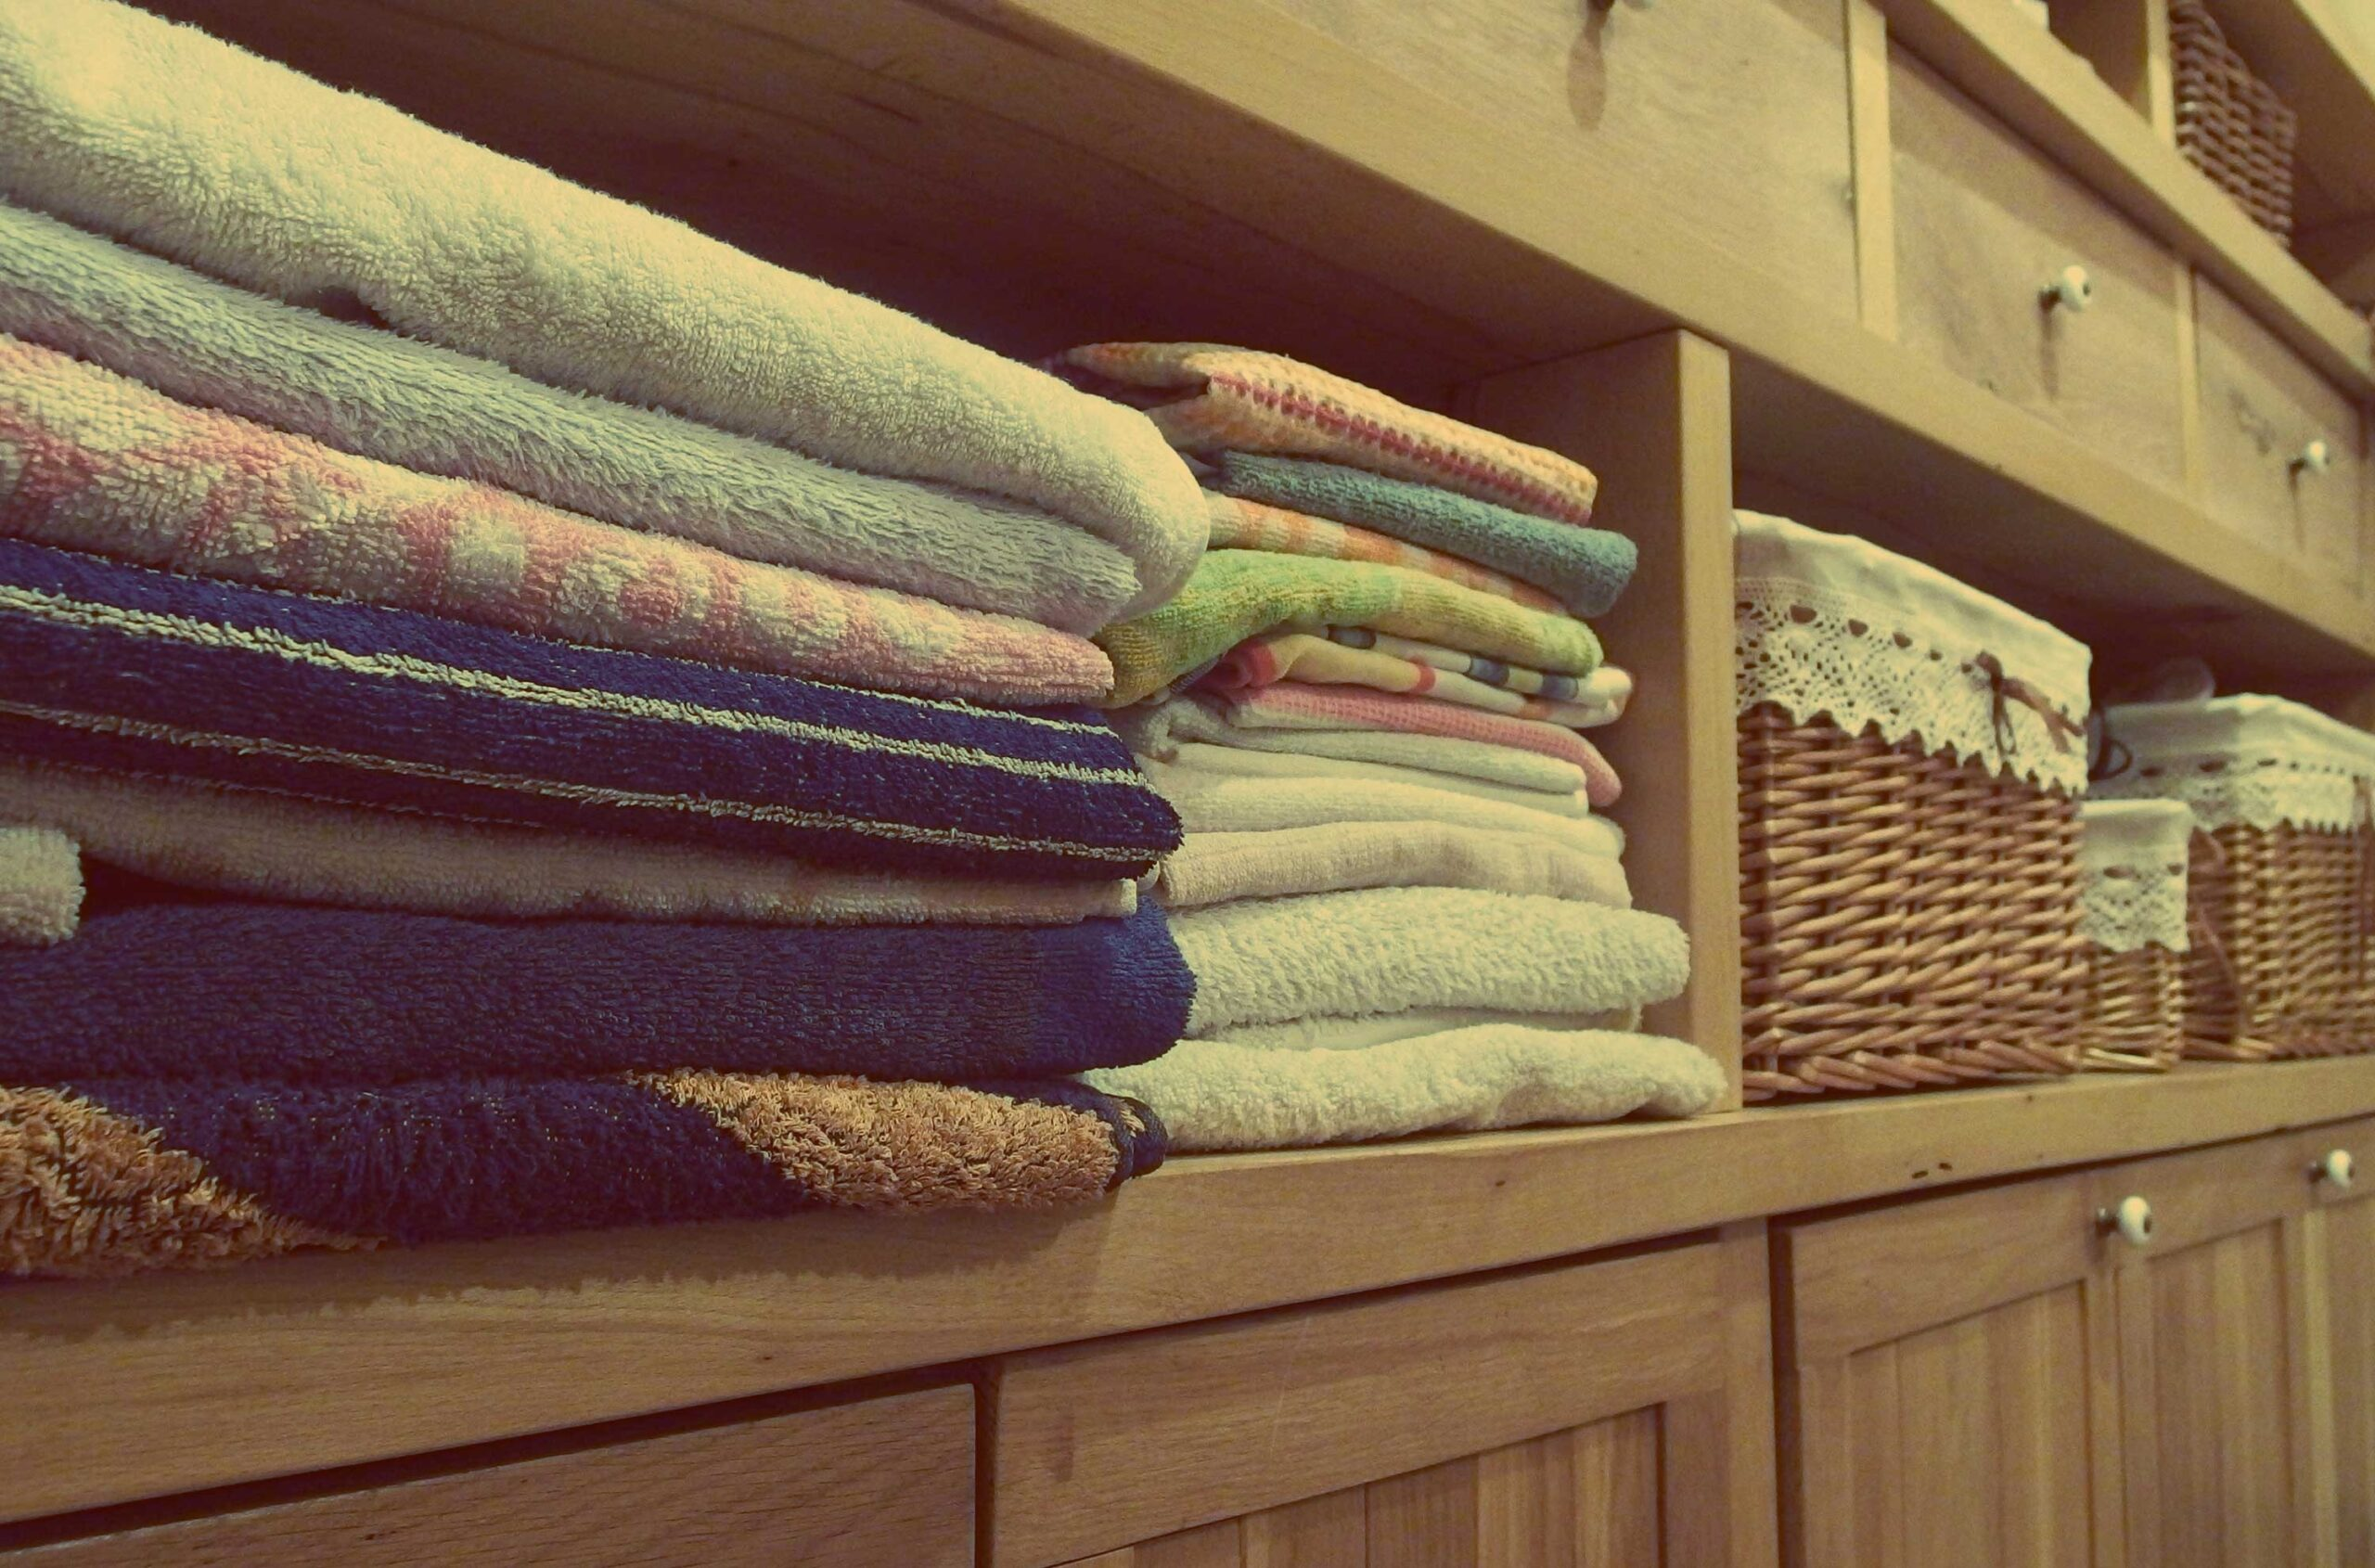 neatly organized linen closet